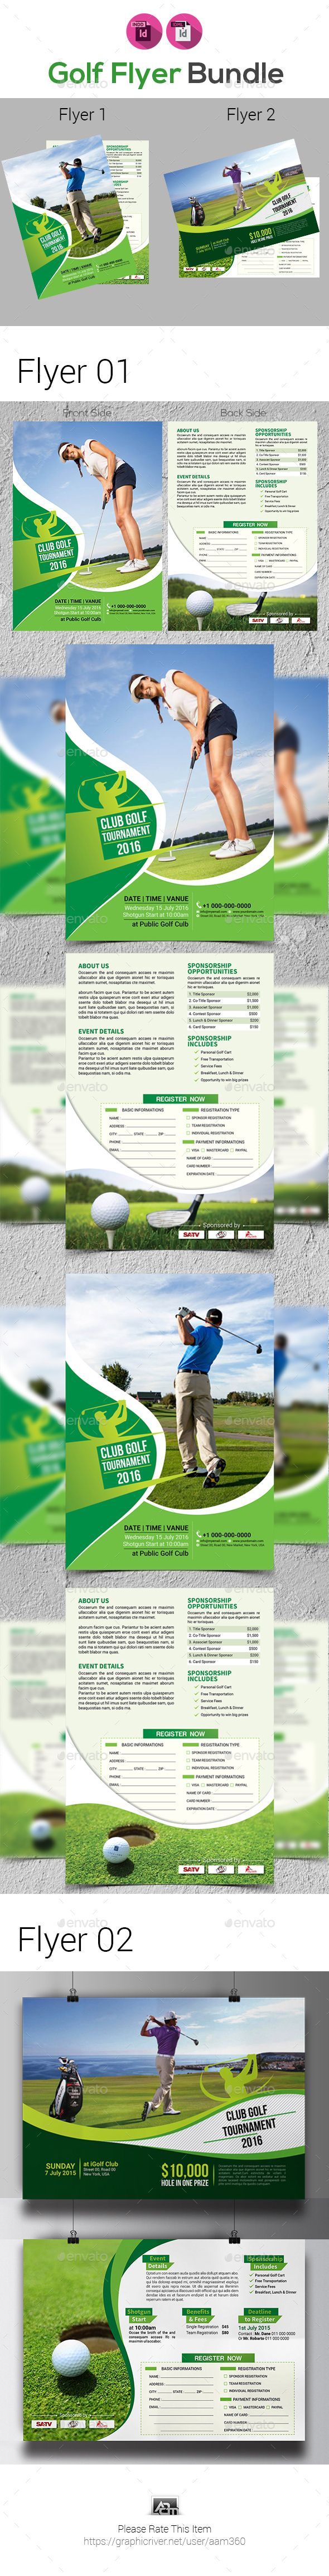 Golf Tournament Flyer Bundle Template  Template Adobe Indesign